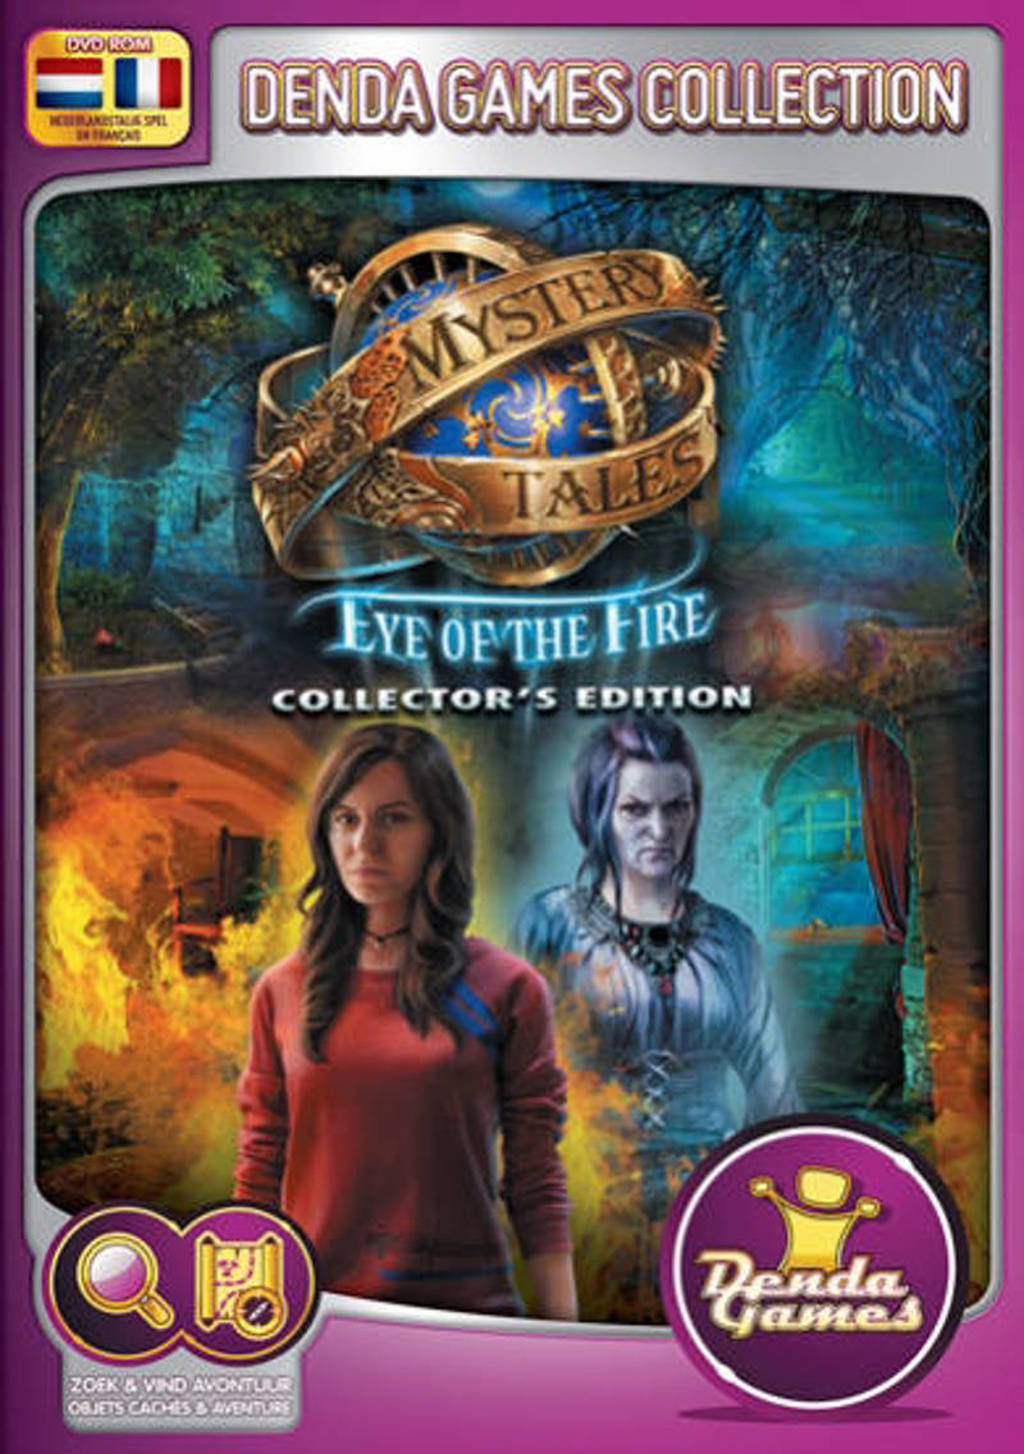 Mystery tales - Eye of the fire (Collectors edition)  (PC)